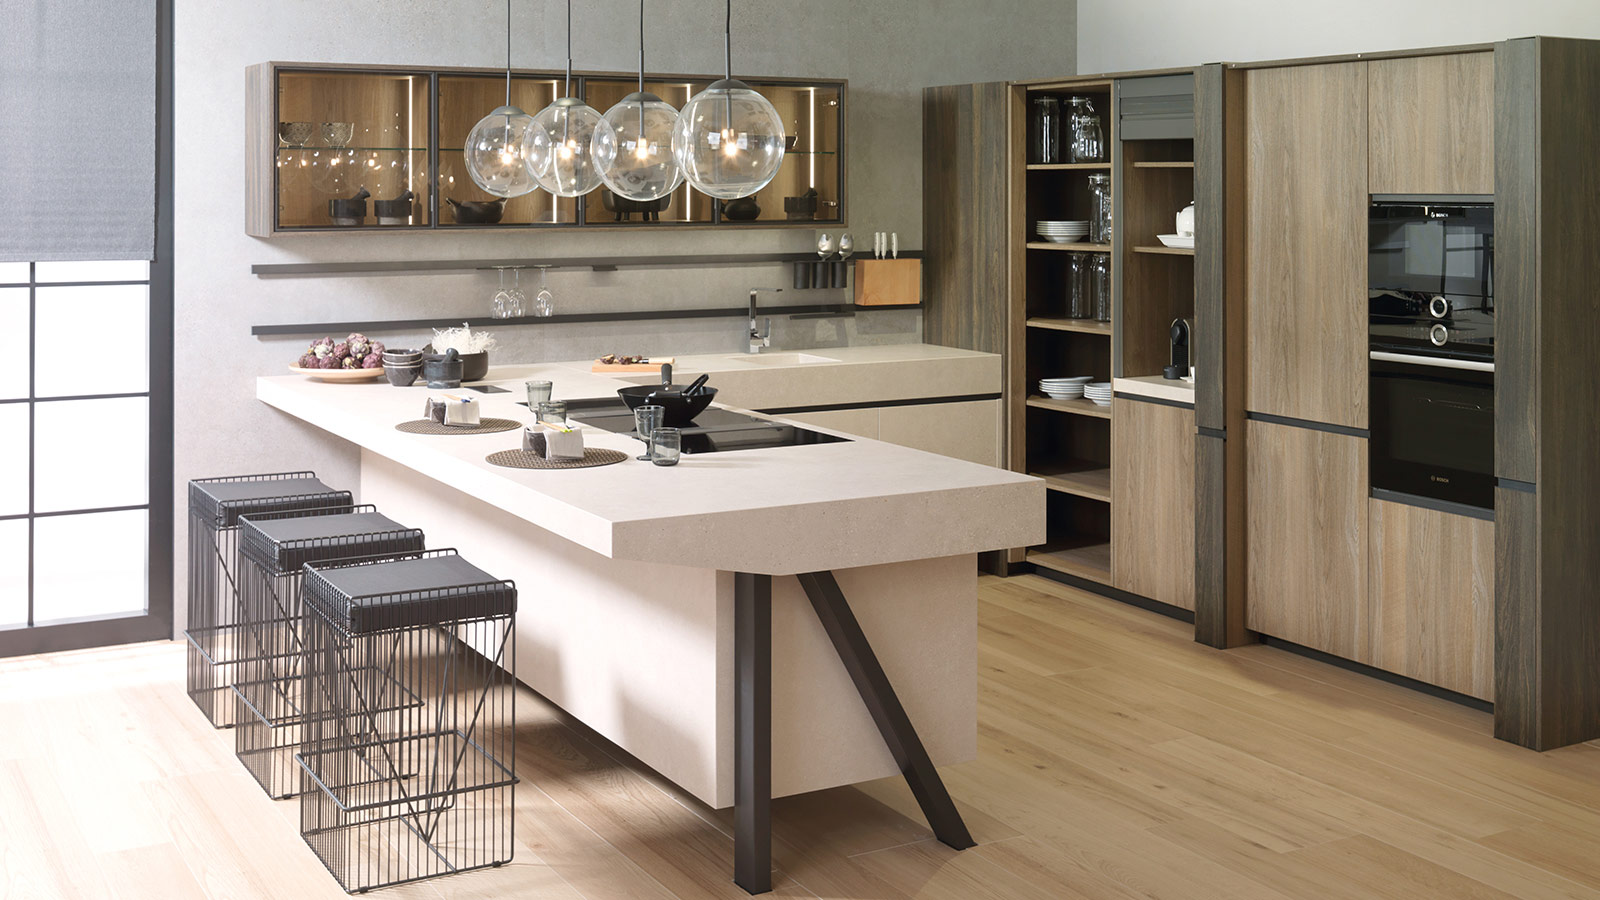 Cocina-E9.30-Xlight-Bottega-Caliza-Silk,-E2